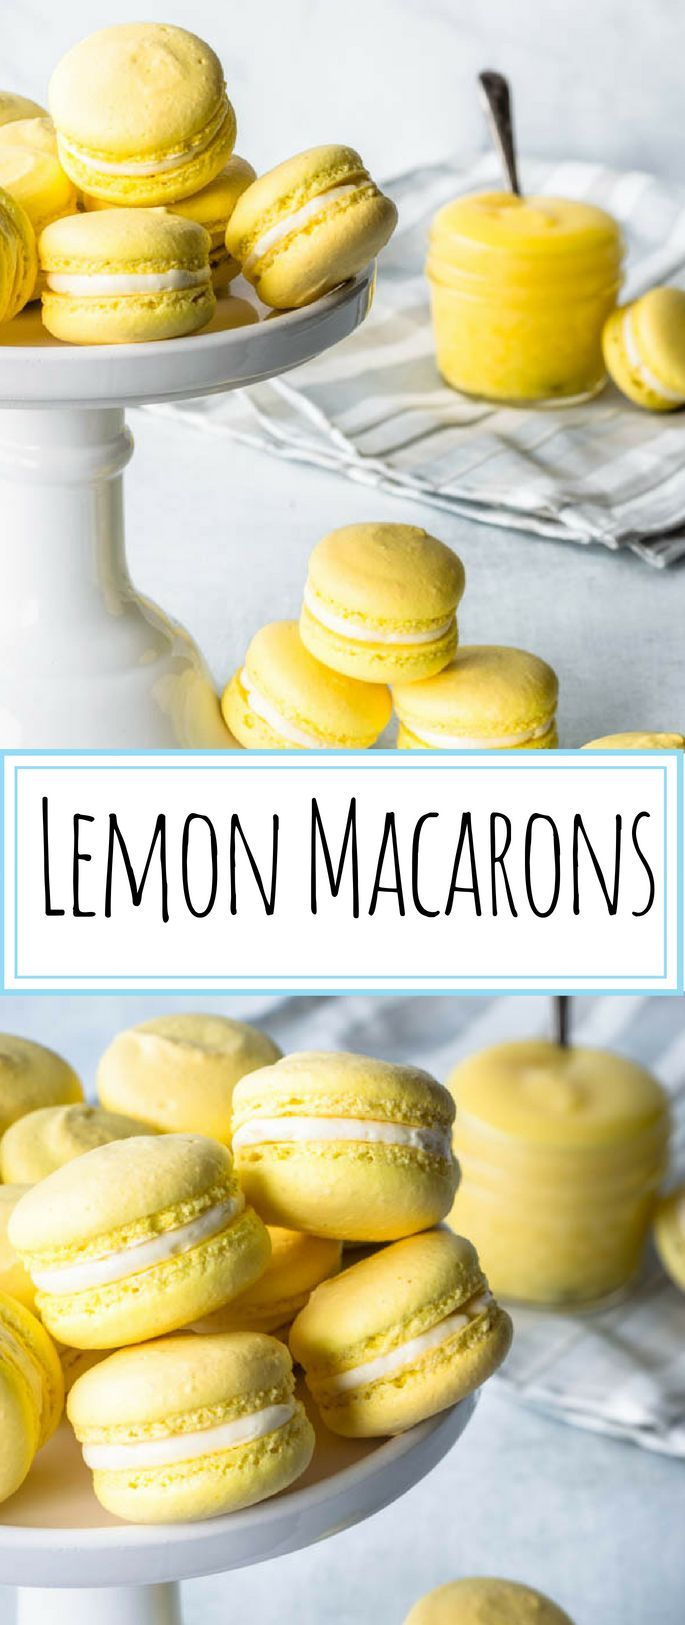 Lemon Macarons These Lemon Macarons are the perfect balance between sweet and tangy, in two perfect